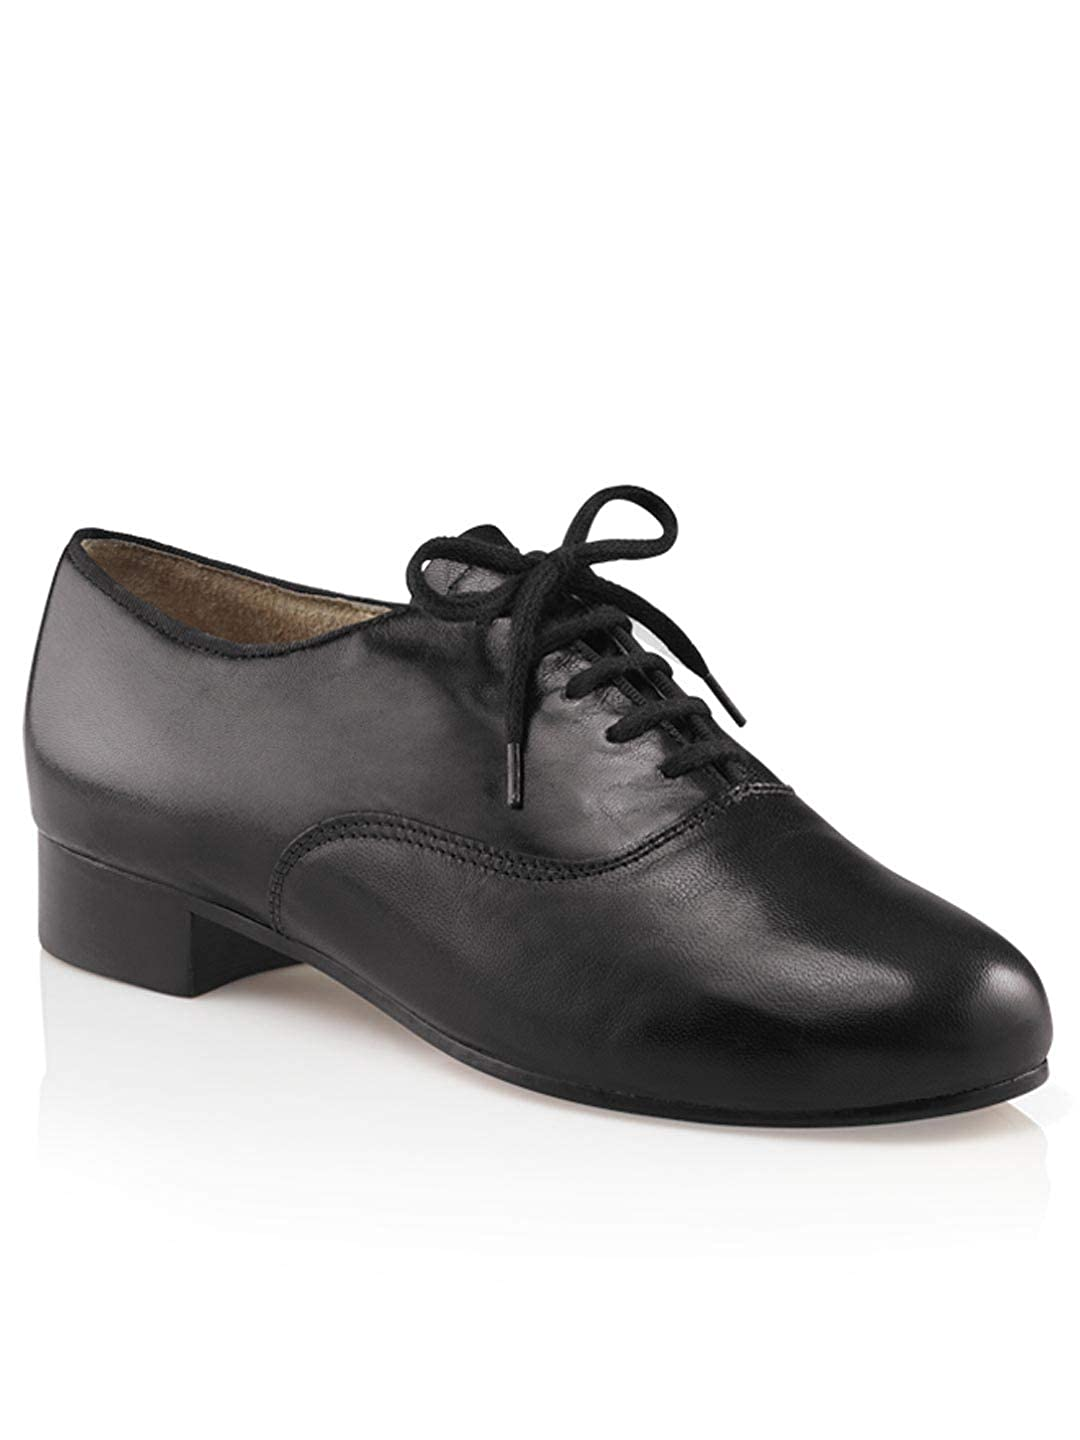 Image of Ballet & Dance Capezio Character/Tap Theatrical